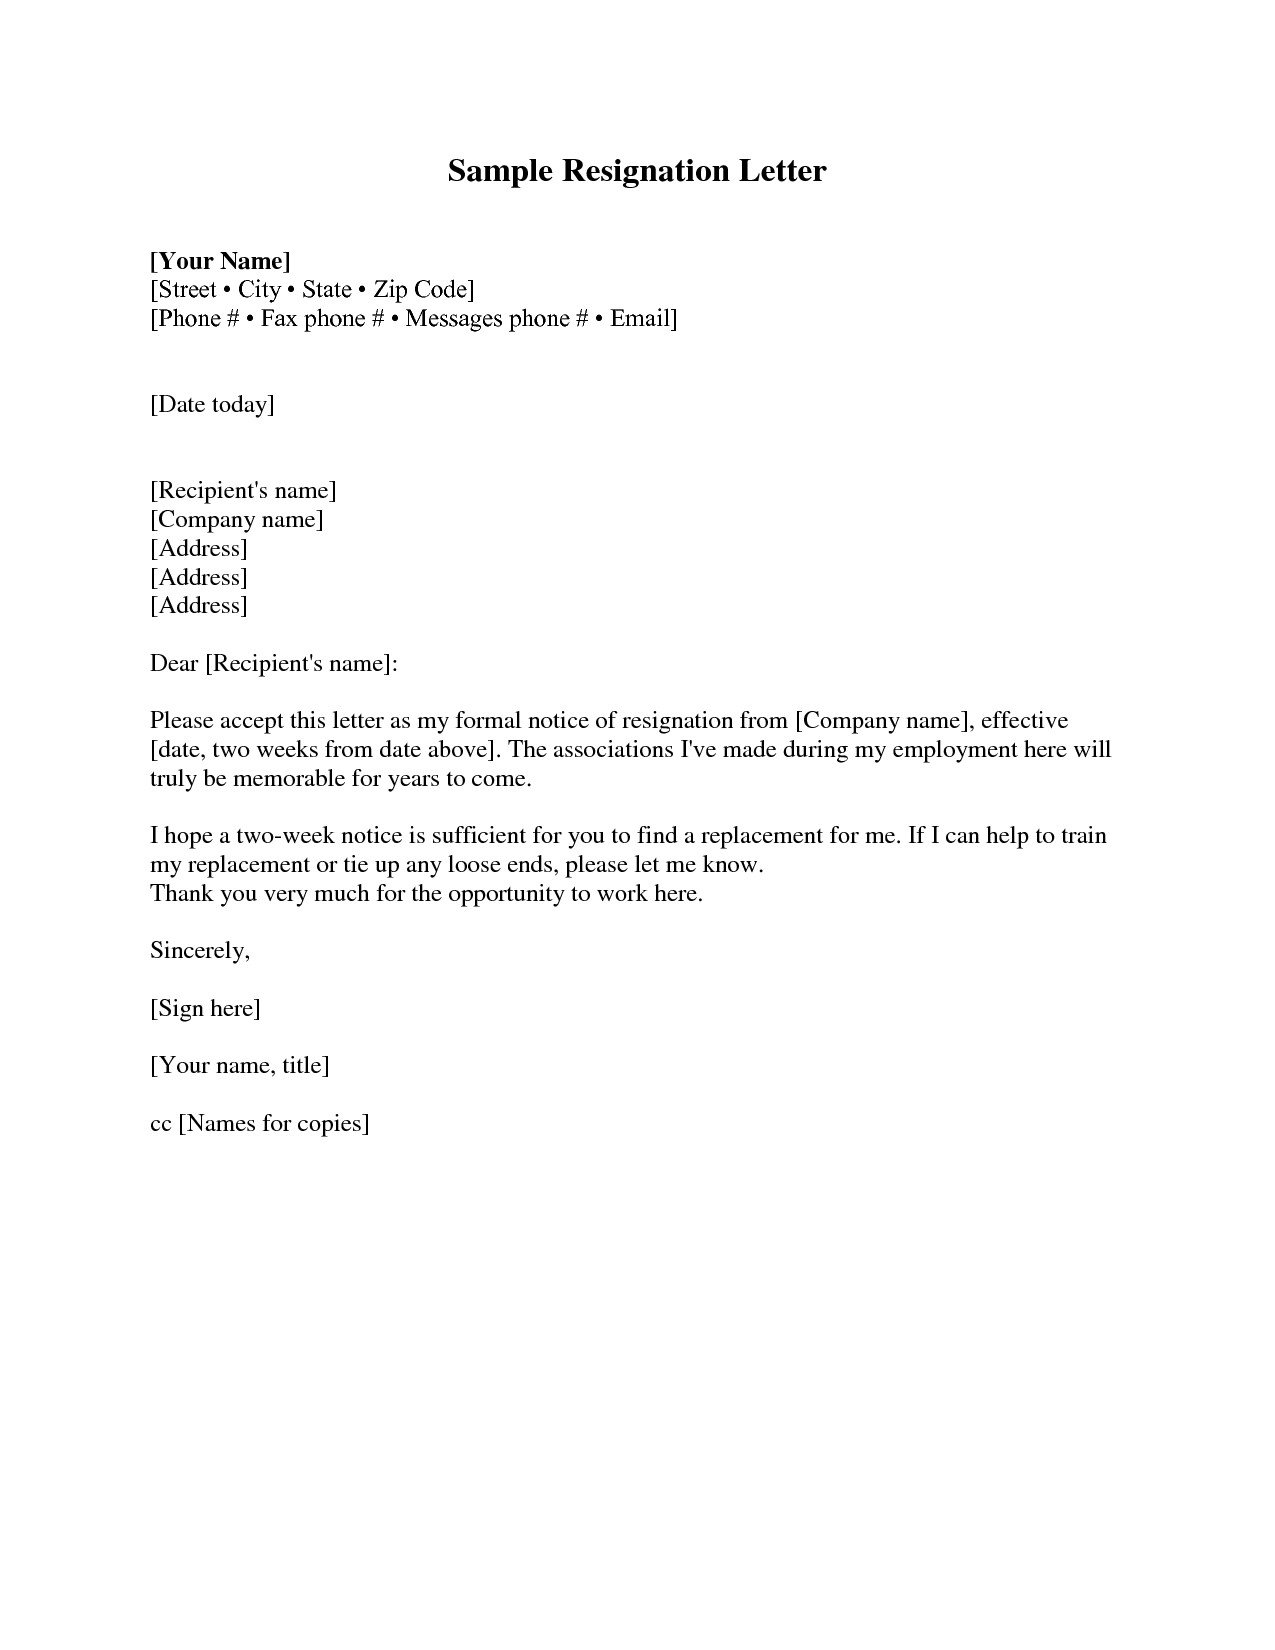 Resignation Letter Free Template Download - Resignation Letter Examples 2 Weeks Notice Acurnamedia